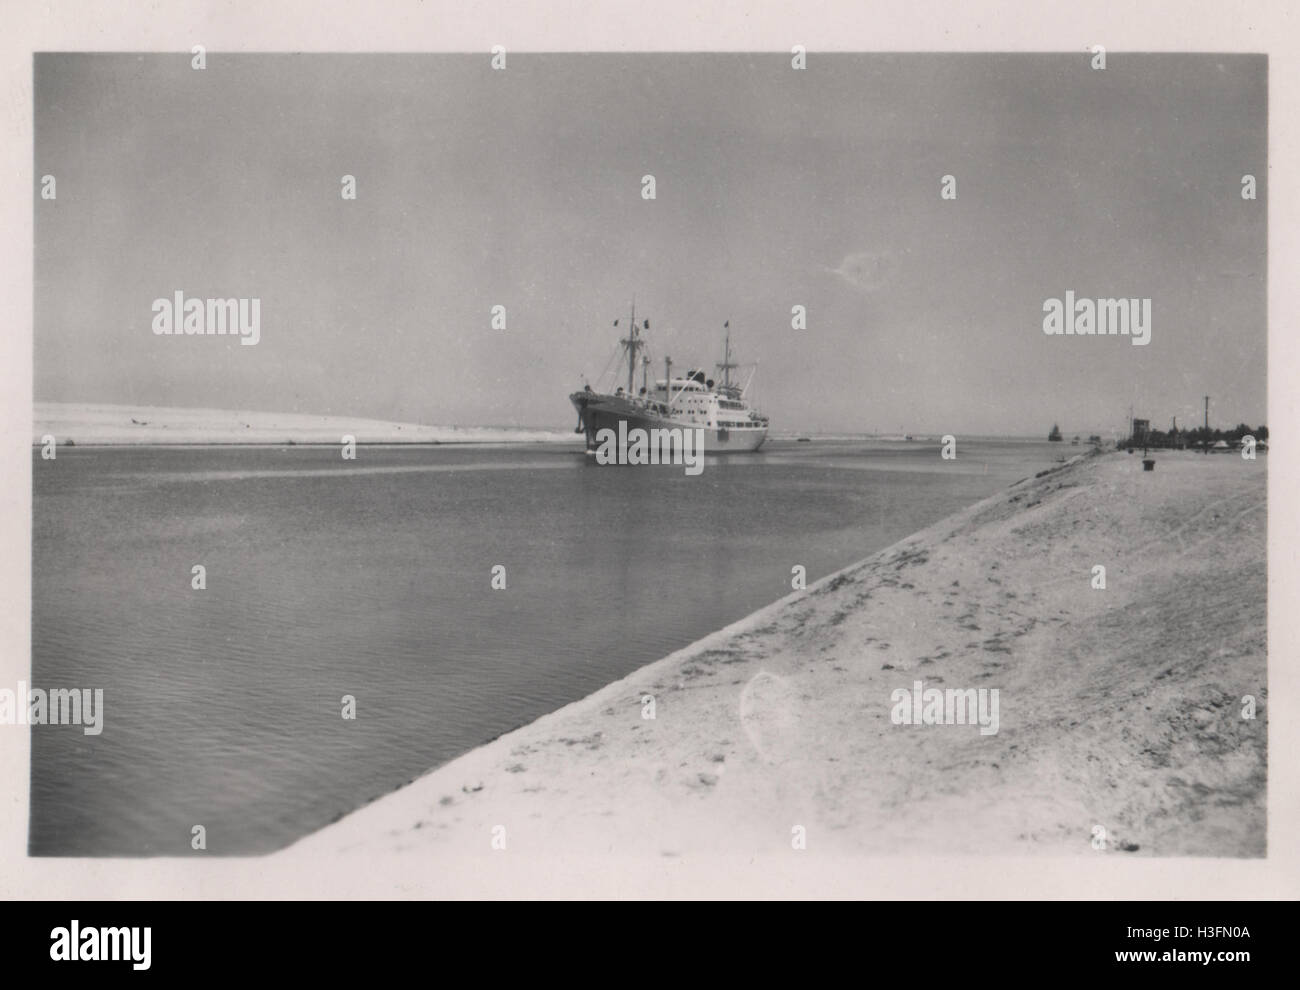 The cargo ship Ile Maurice transiting the Suez Canal in the area of the Great Bitter Lake in 1952 in the period - Stock Image